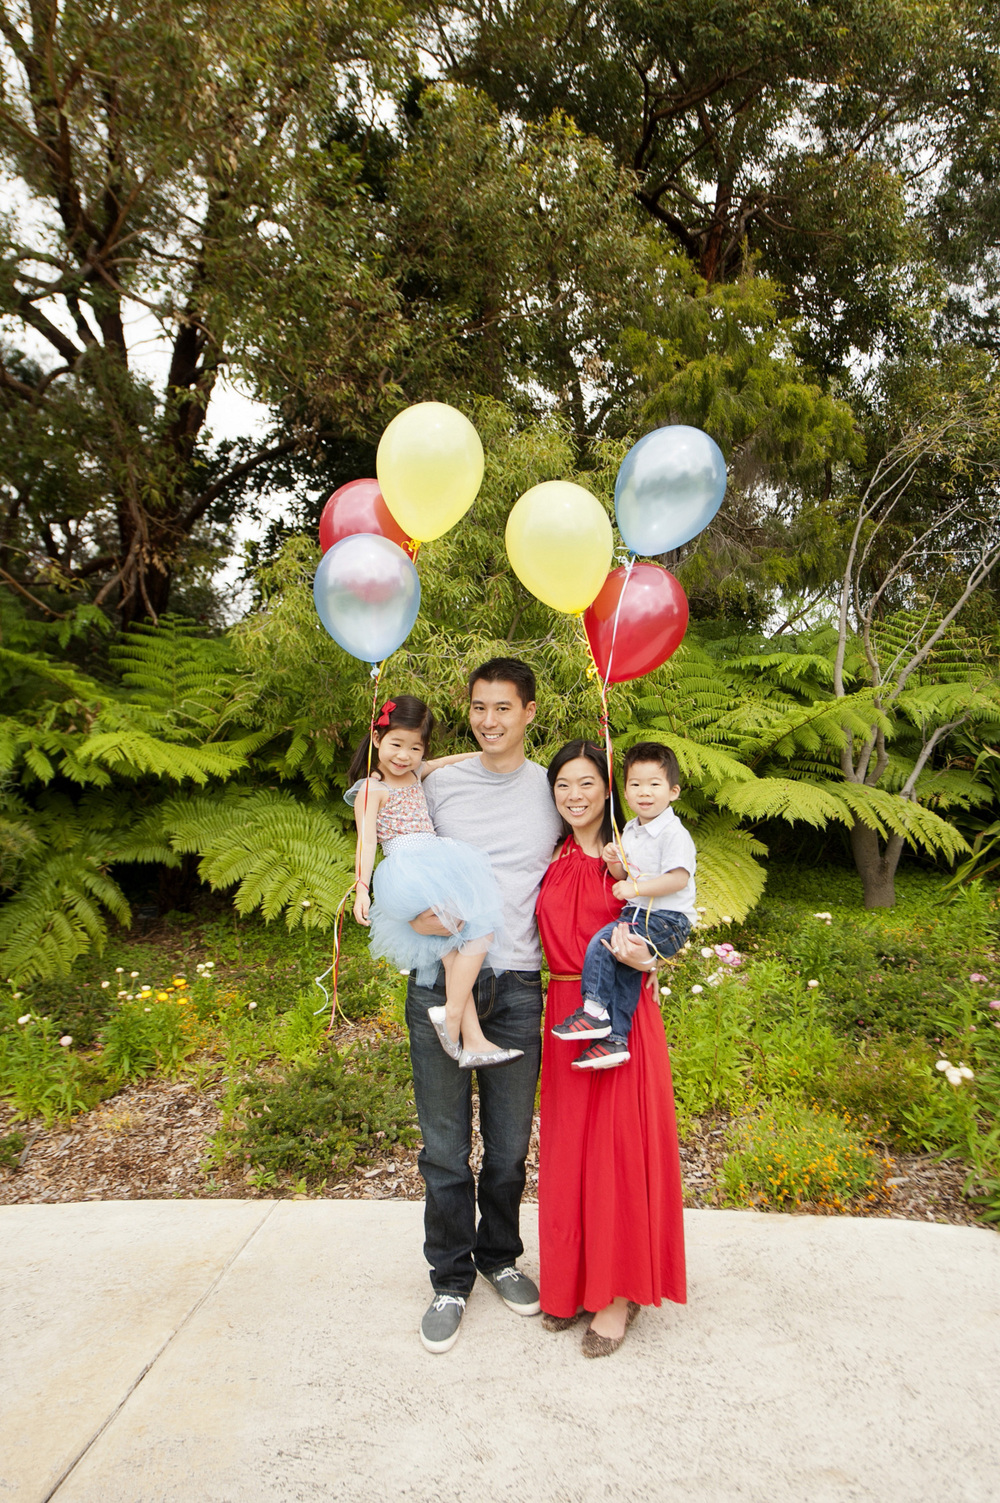 family portrait in kings park perth with helium balloons